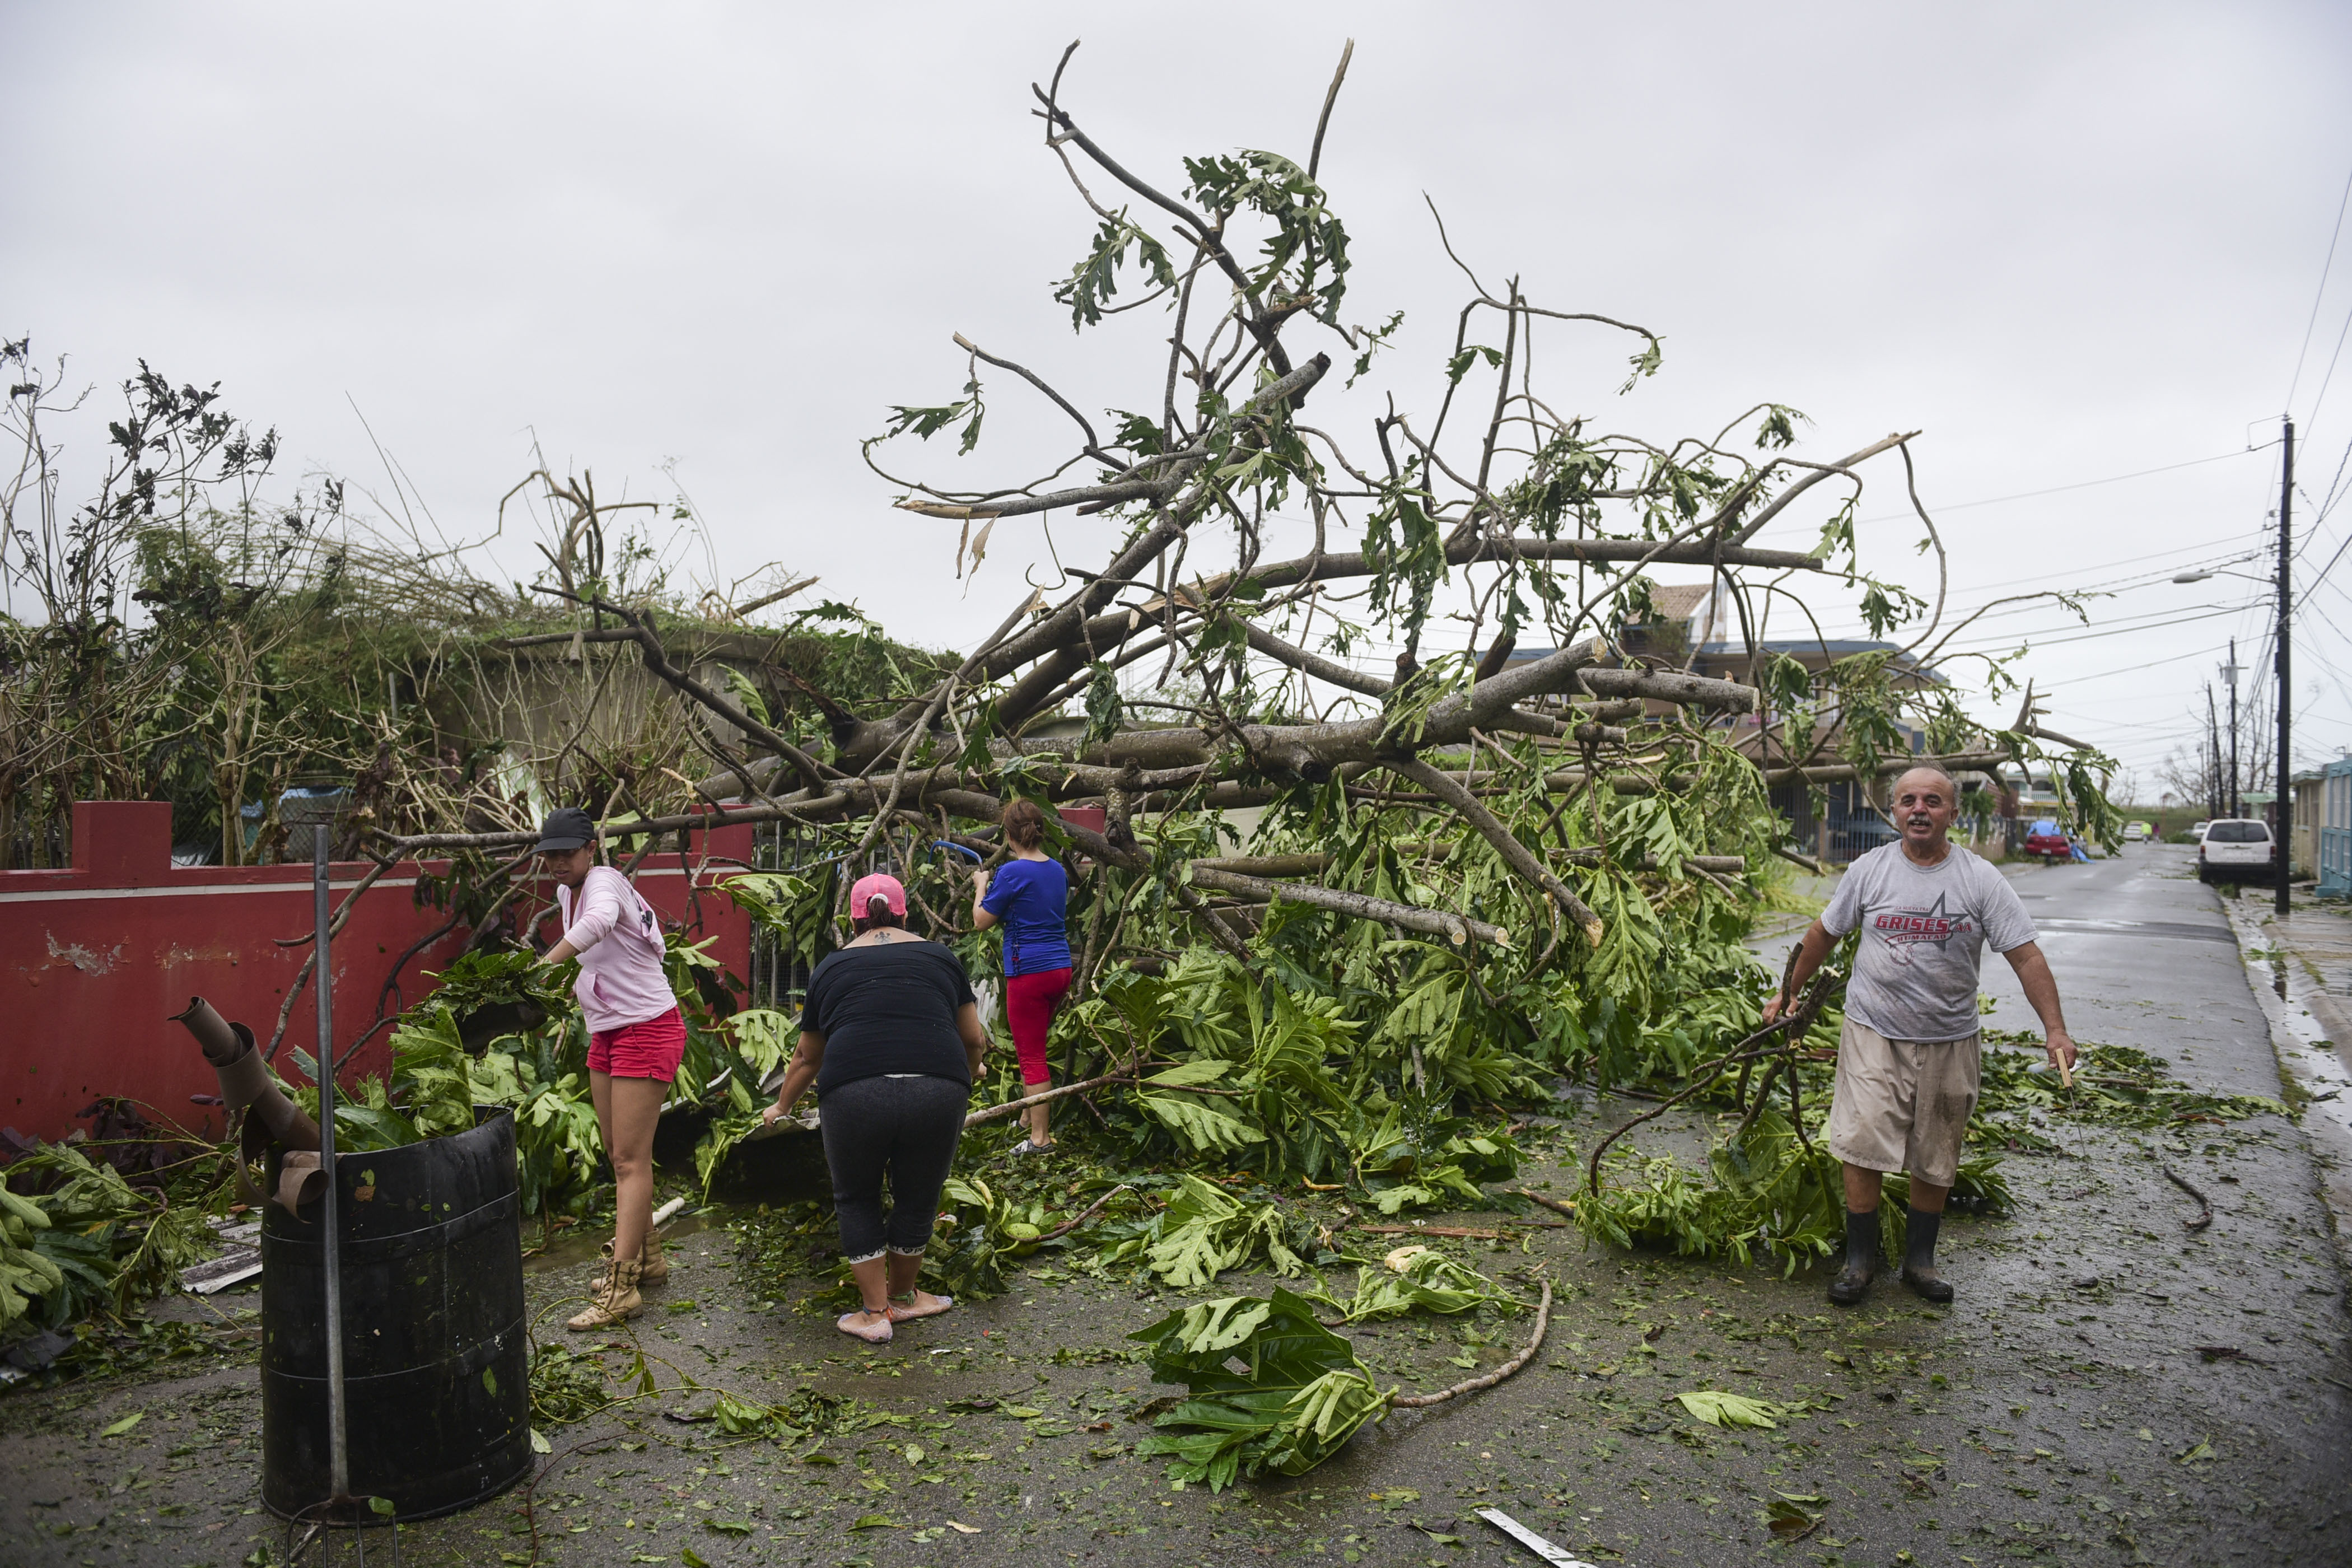 <div class='meta'><div class='origin-logo' data-origin='none'></div><span class='caption-text' data-credit='Carlos Giusti/AP Photo'>A family helps clean the road after Hurricane Maria hit the eastern region of the island, in Humacao, Puerto Rico, September 20, 2017.</span></div>